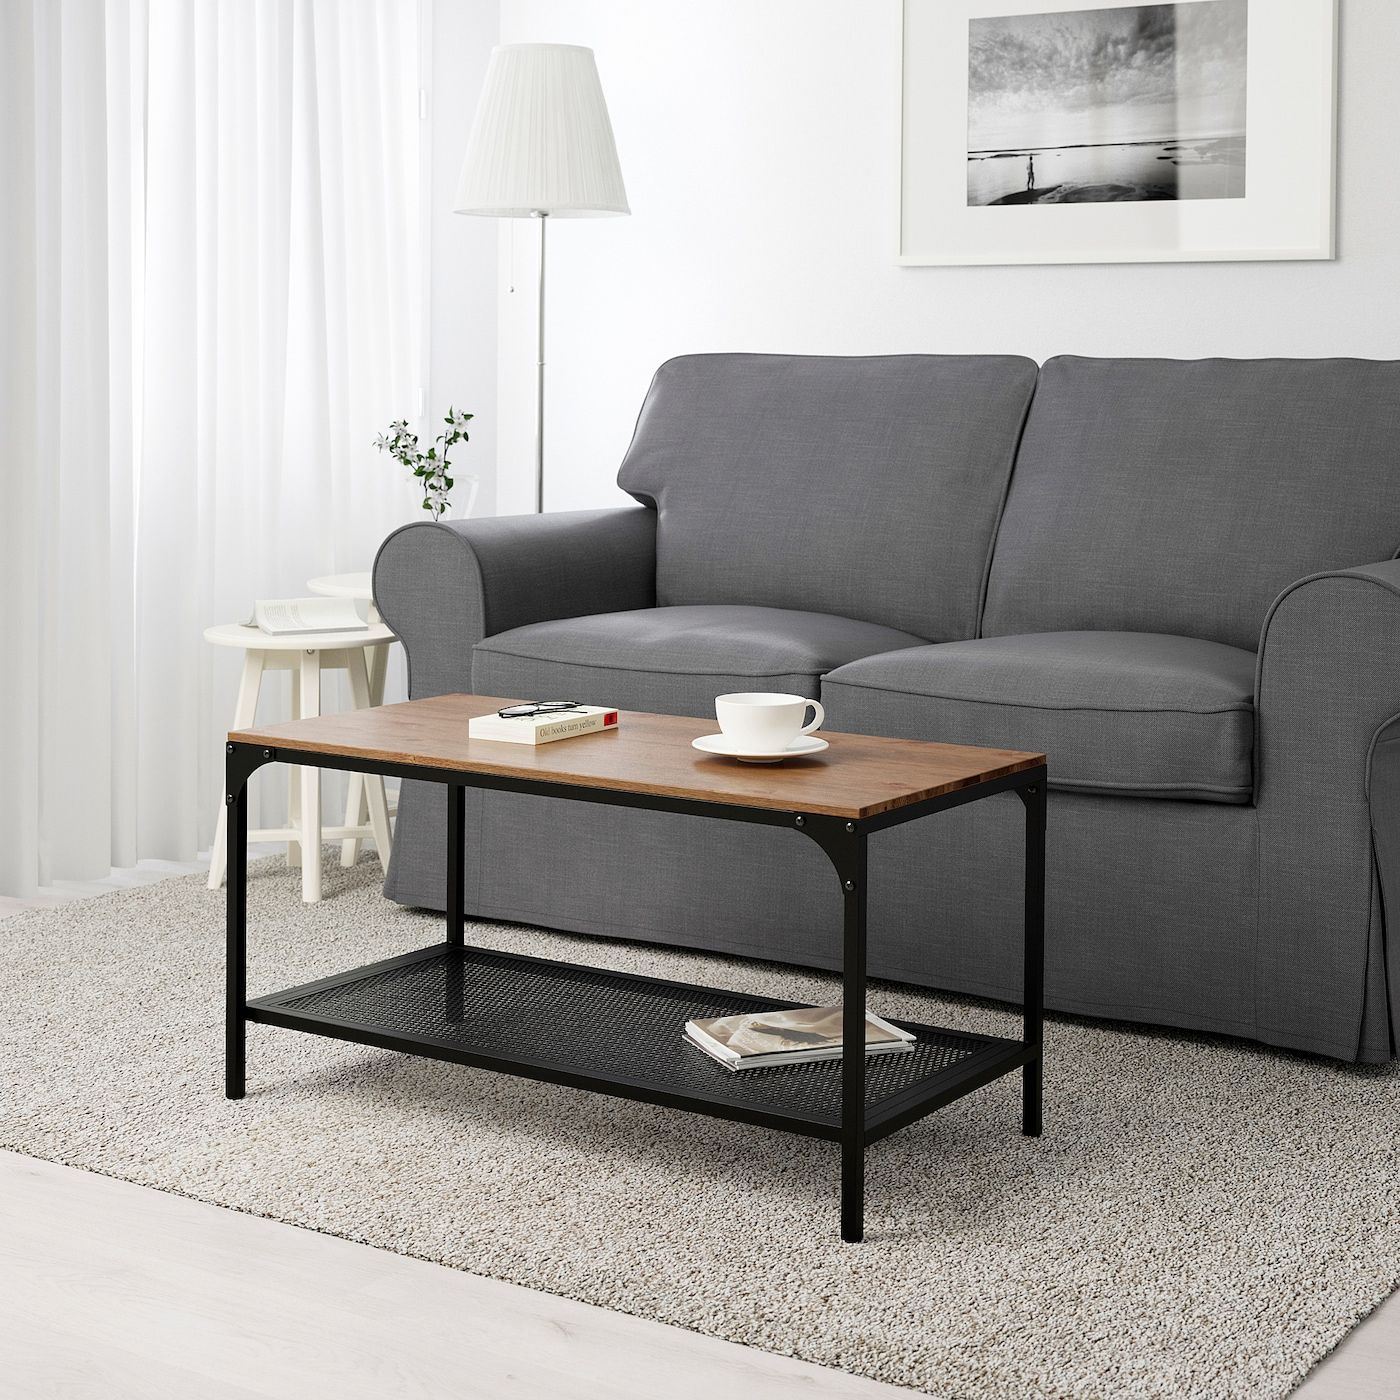 FjÄllbo Coffee Table Black 353 8x181 8